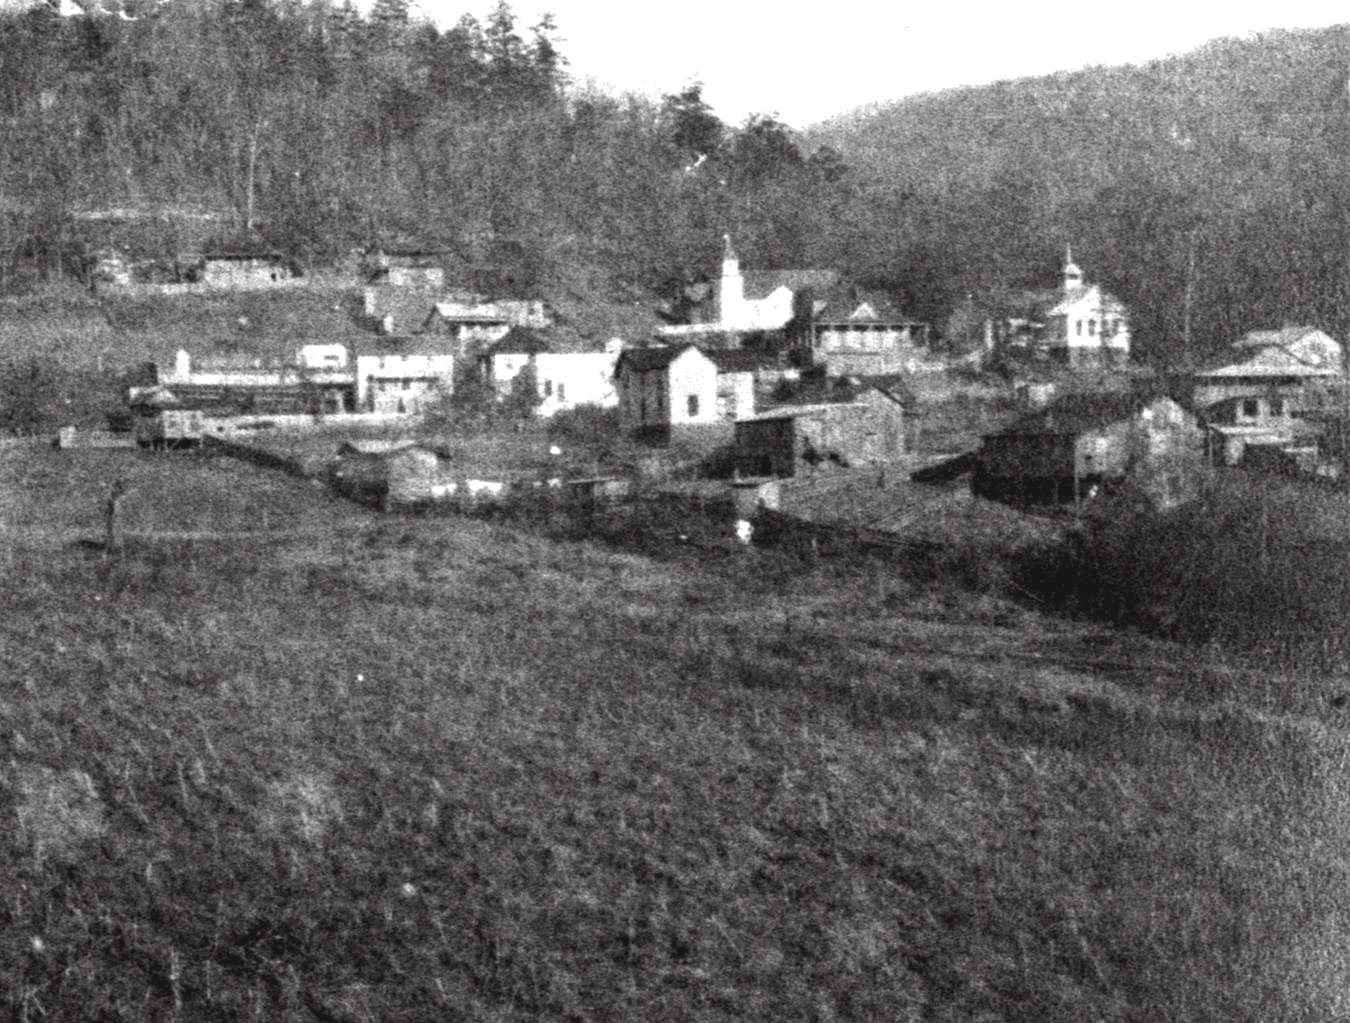 Another View of Norma in early 1900s